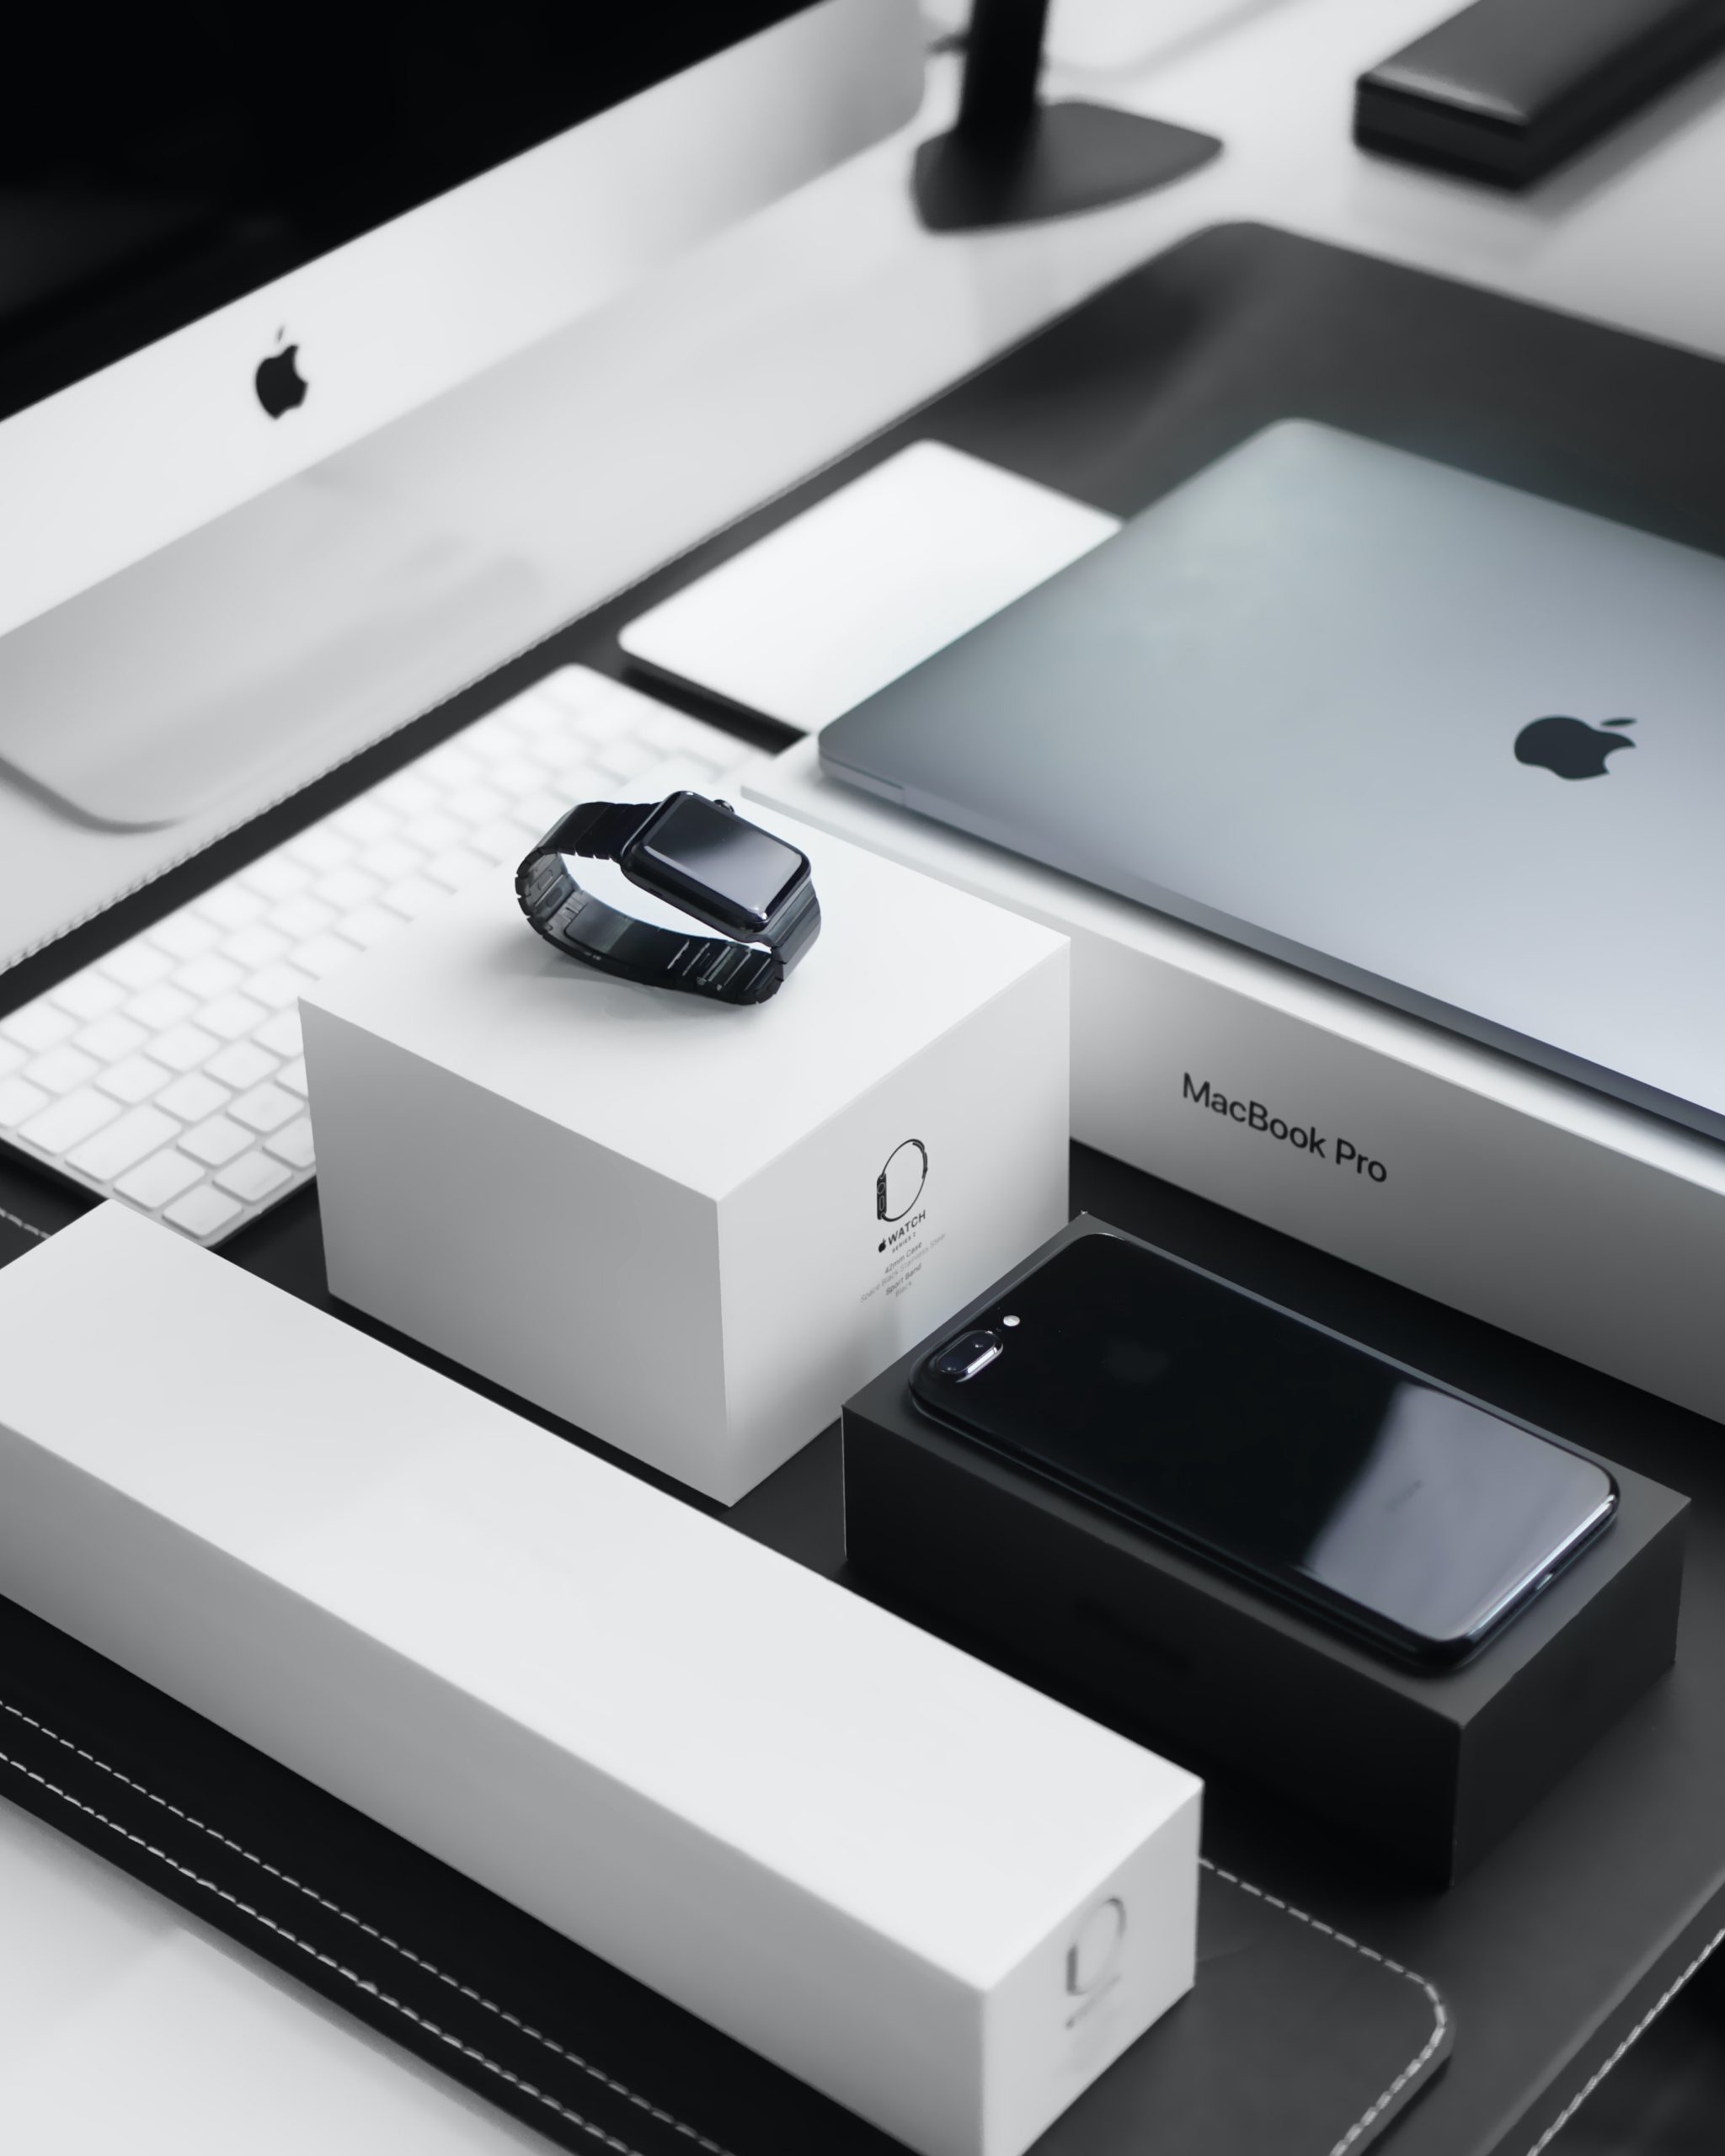 Apple Memorial Day Sale 2021: What to Expect and the Best Deals